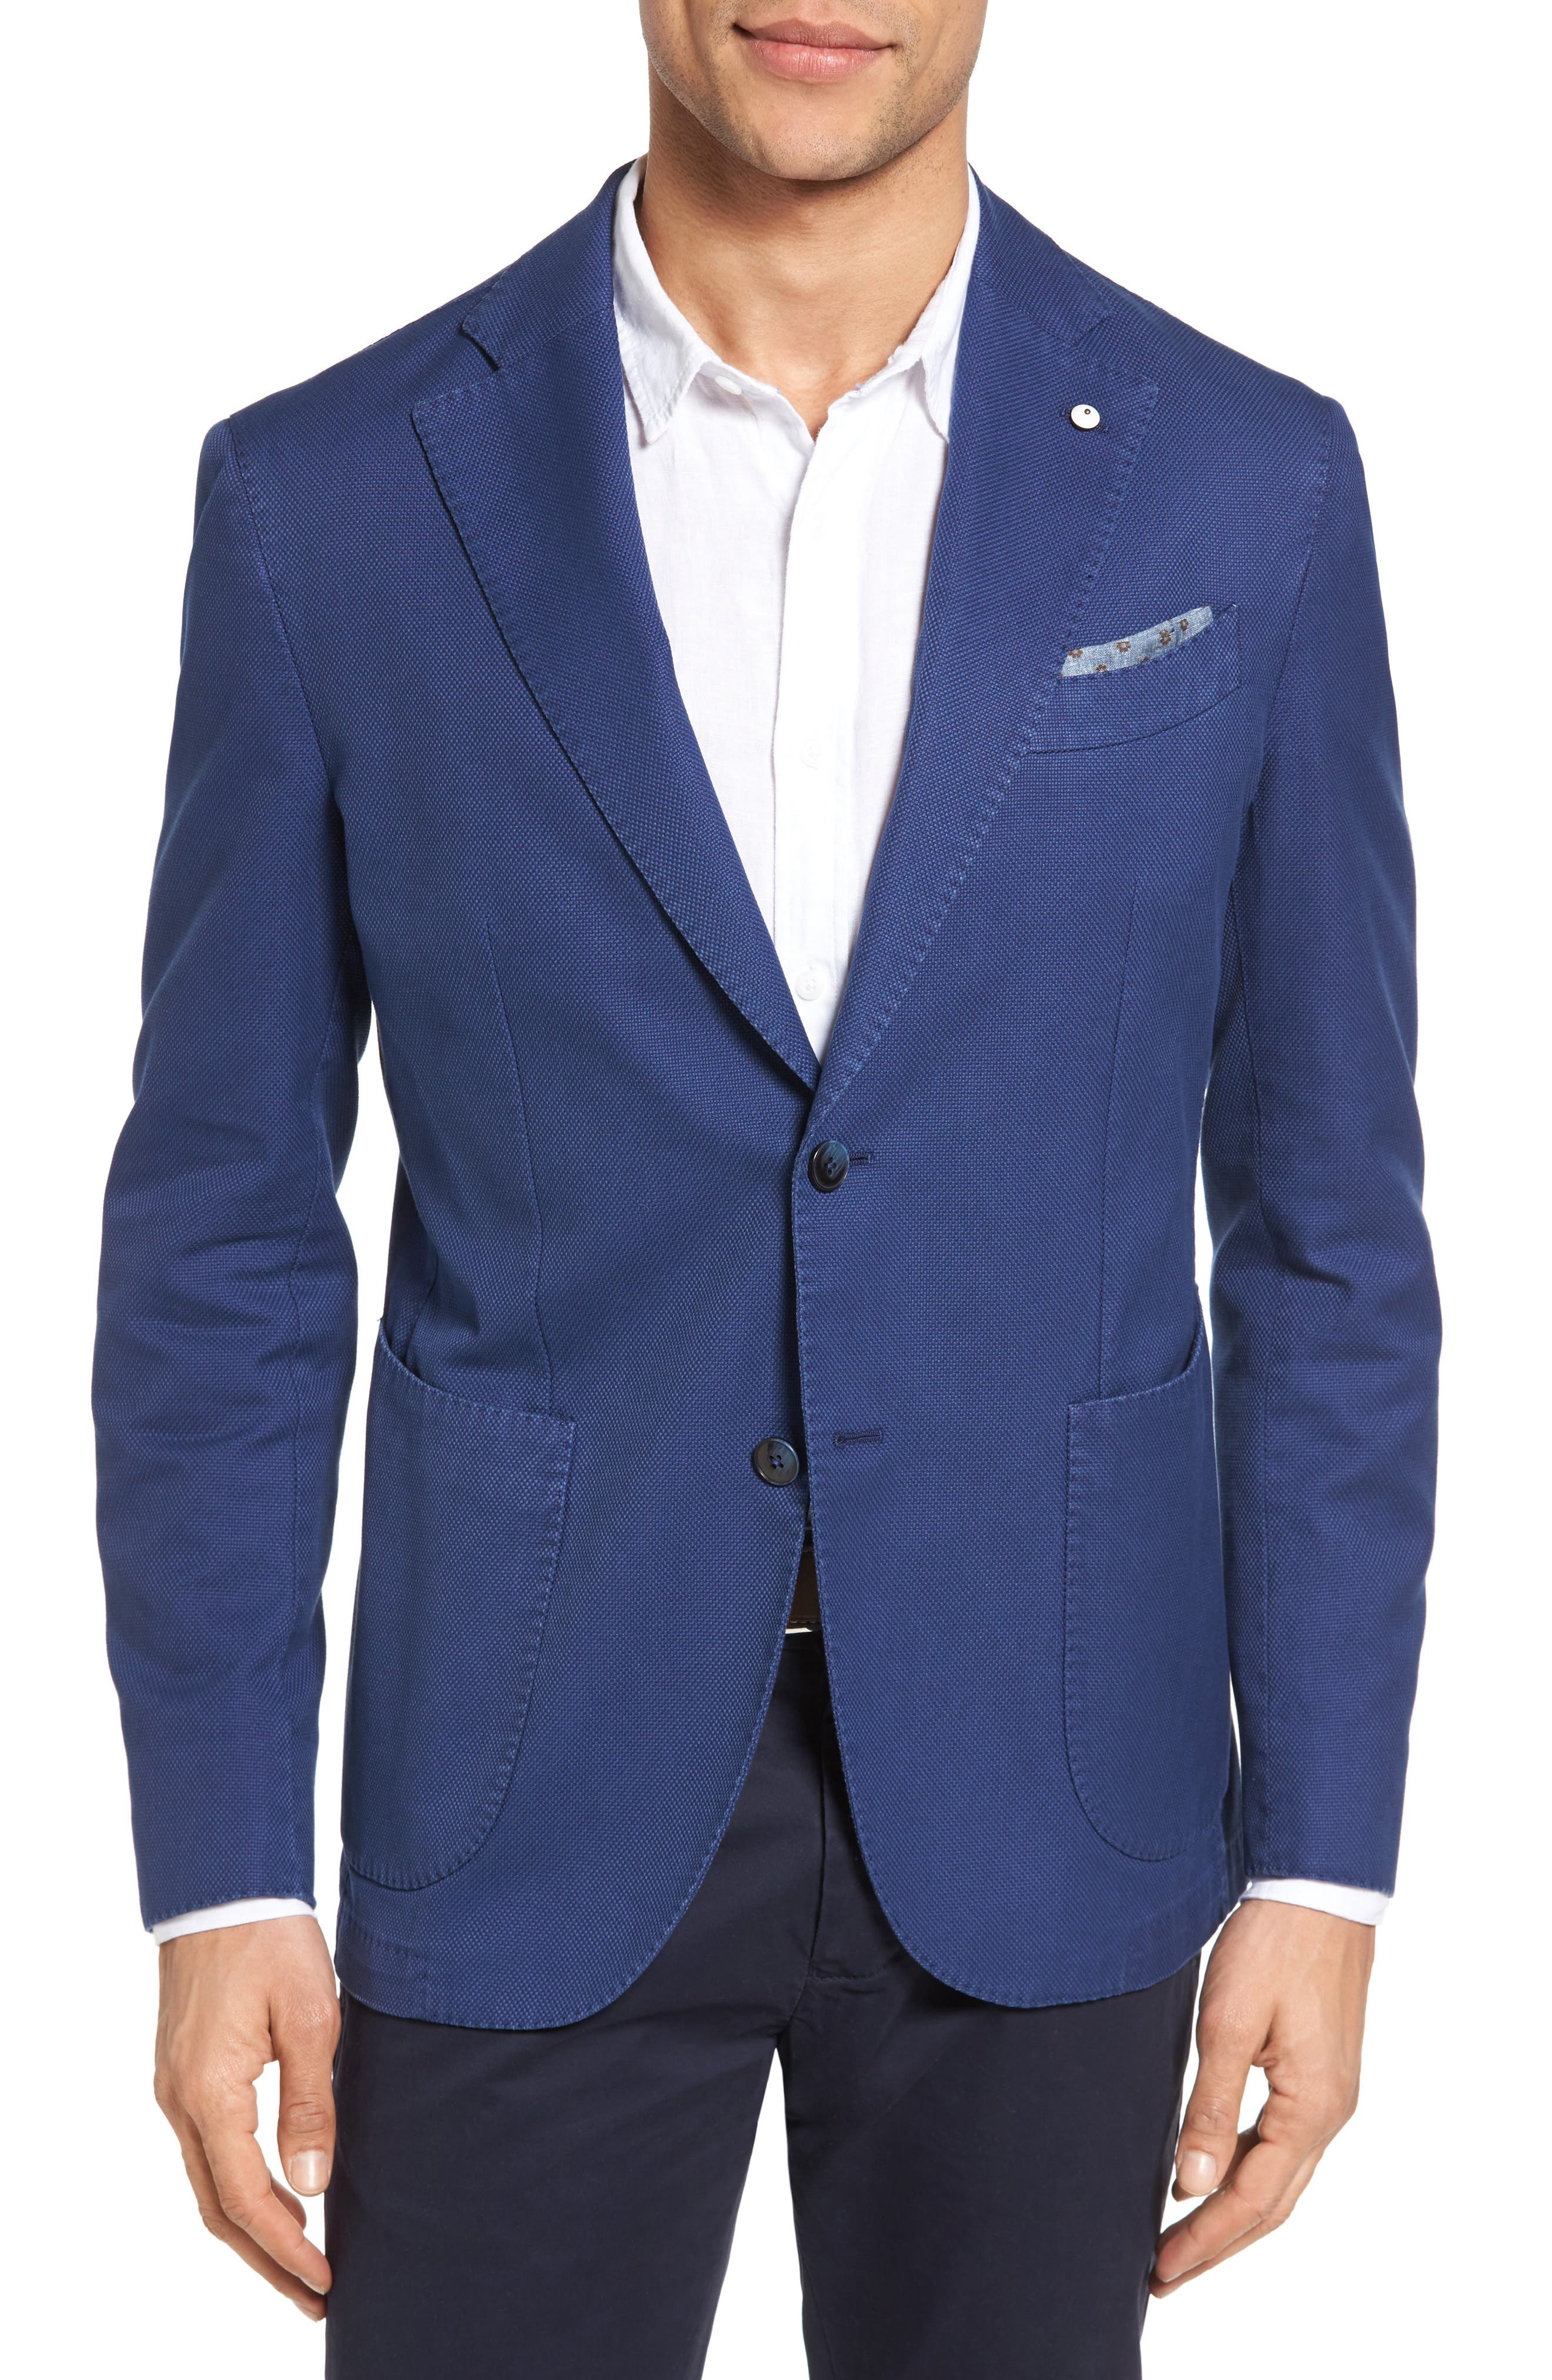 Alternate Image 1 Selected - L.B.M. 1911 Unconstructed Classic Fit Cotton Blazer